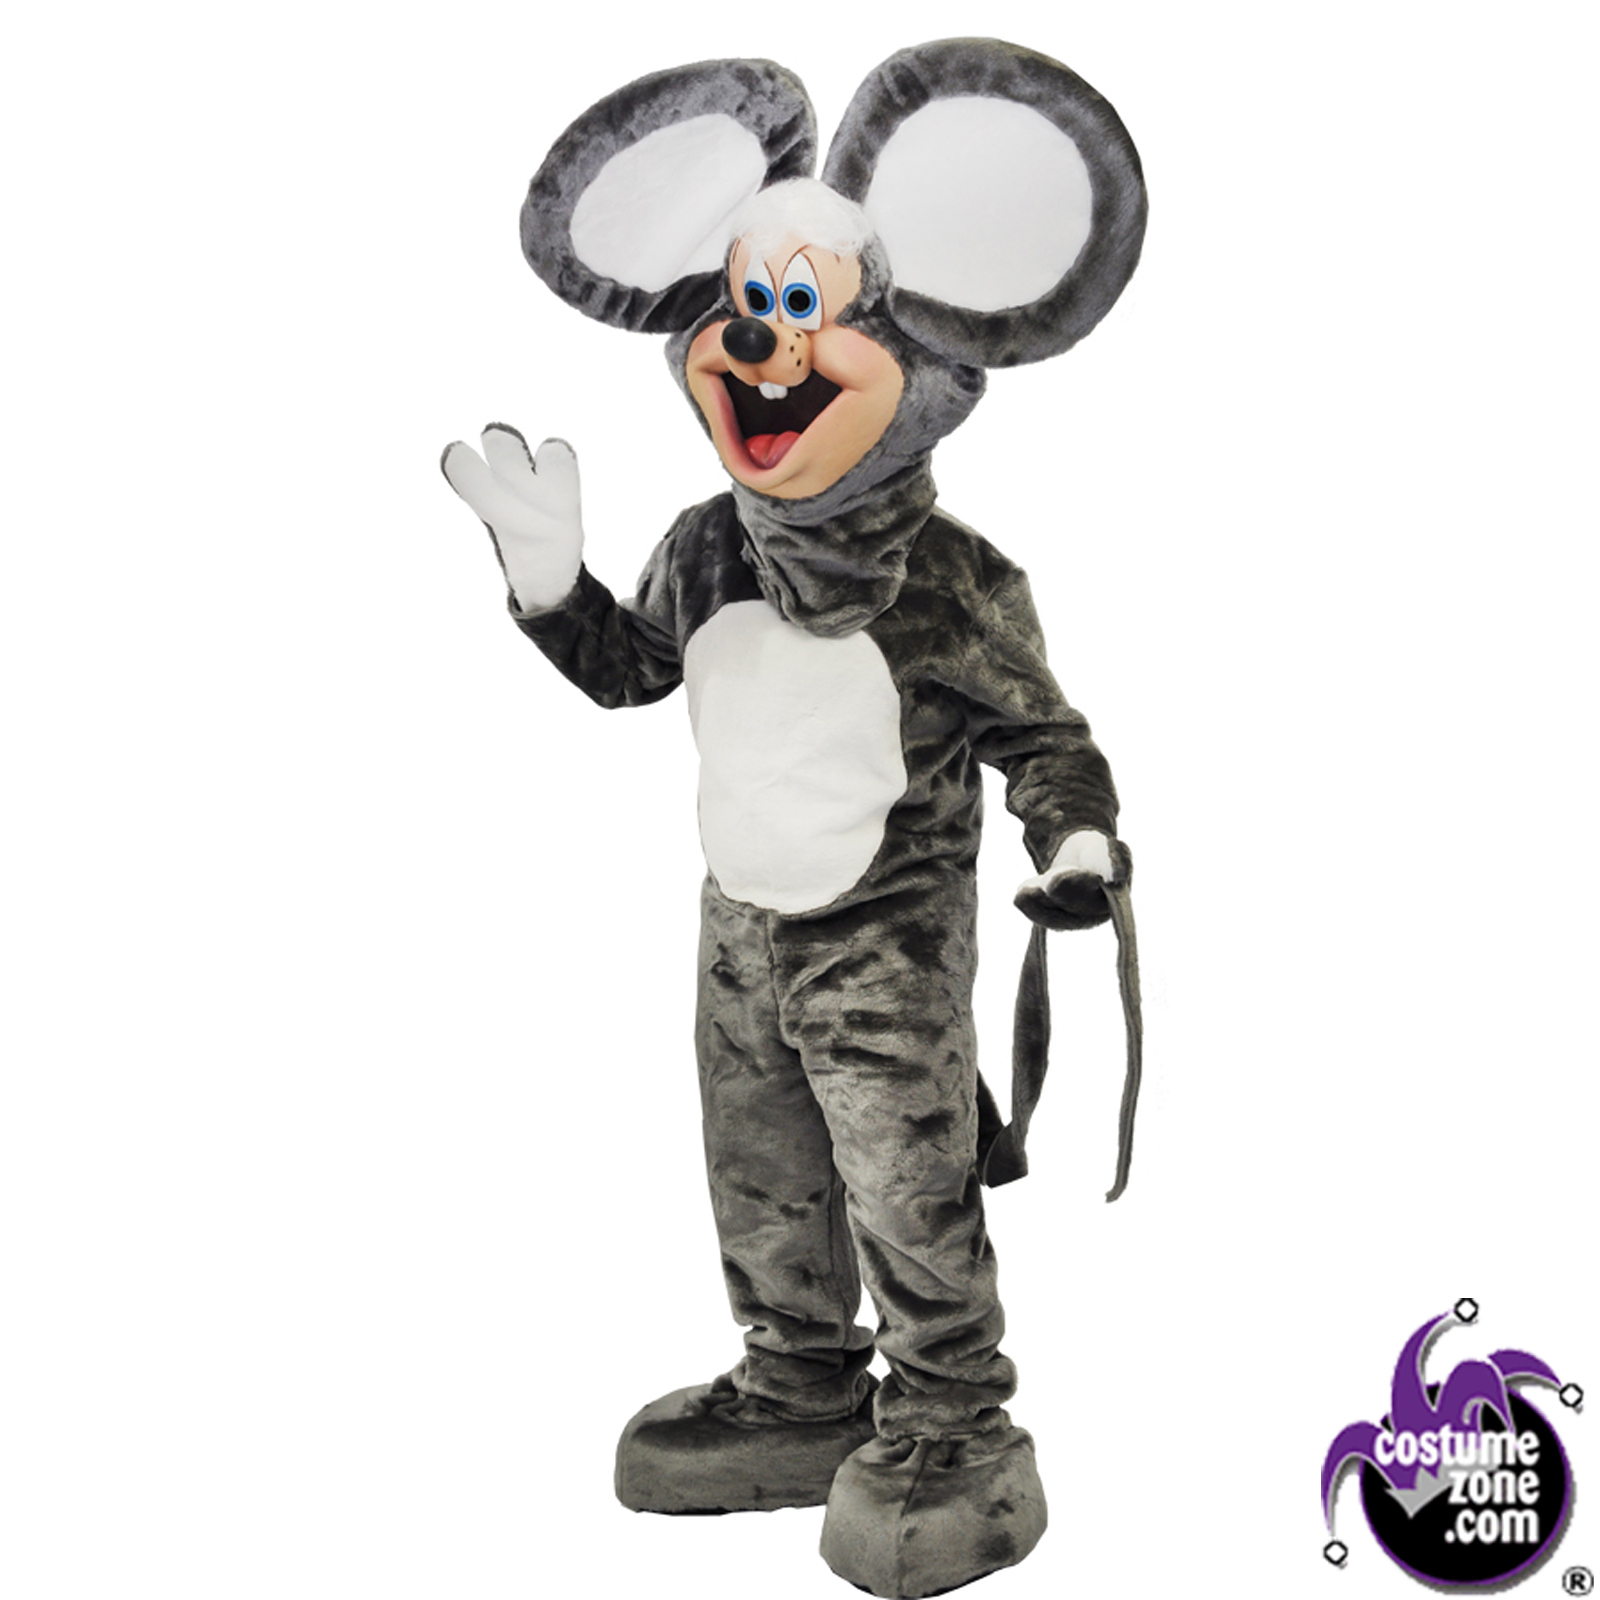 Halloween Costumes | Halloween Zoobies Squeek Mouse Mascot Costume (Adult Regular Size)